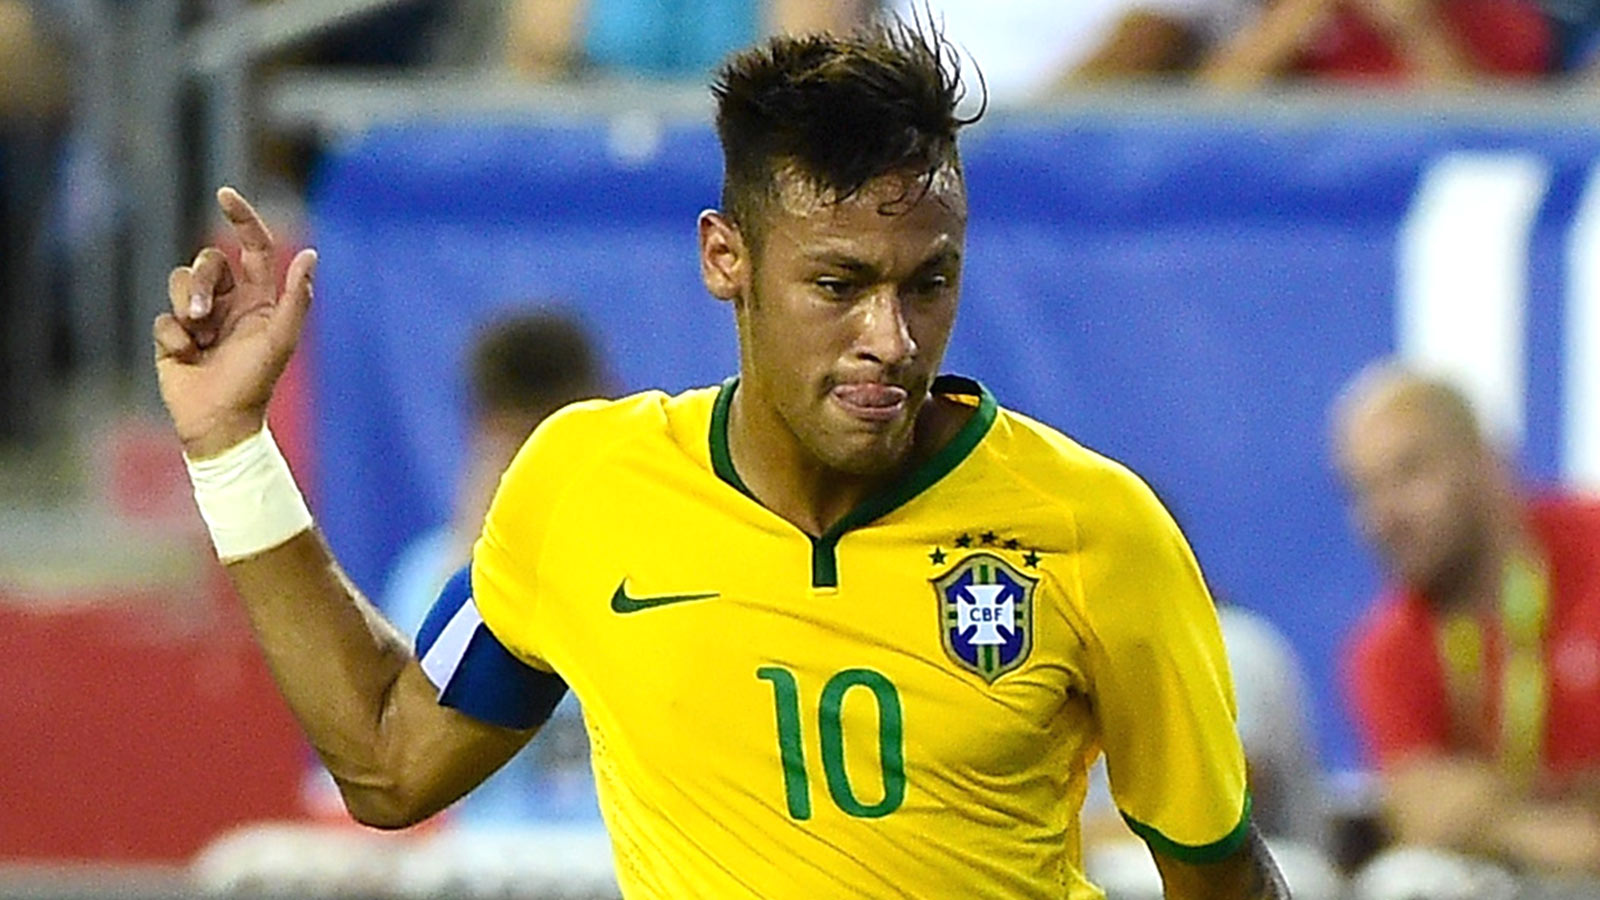 Brazil coach Dunga brings back Neymar for World Cup qualifiers